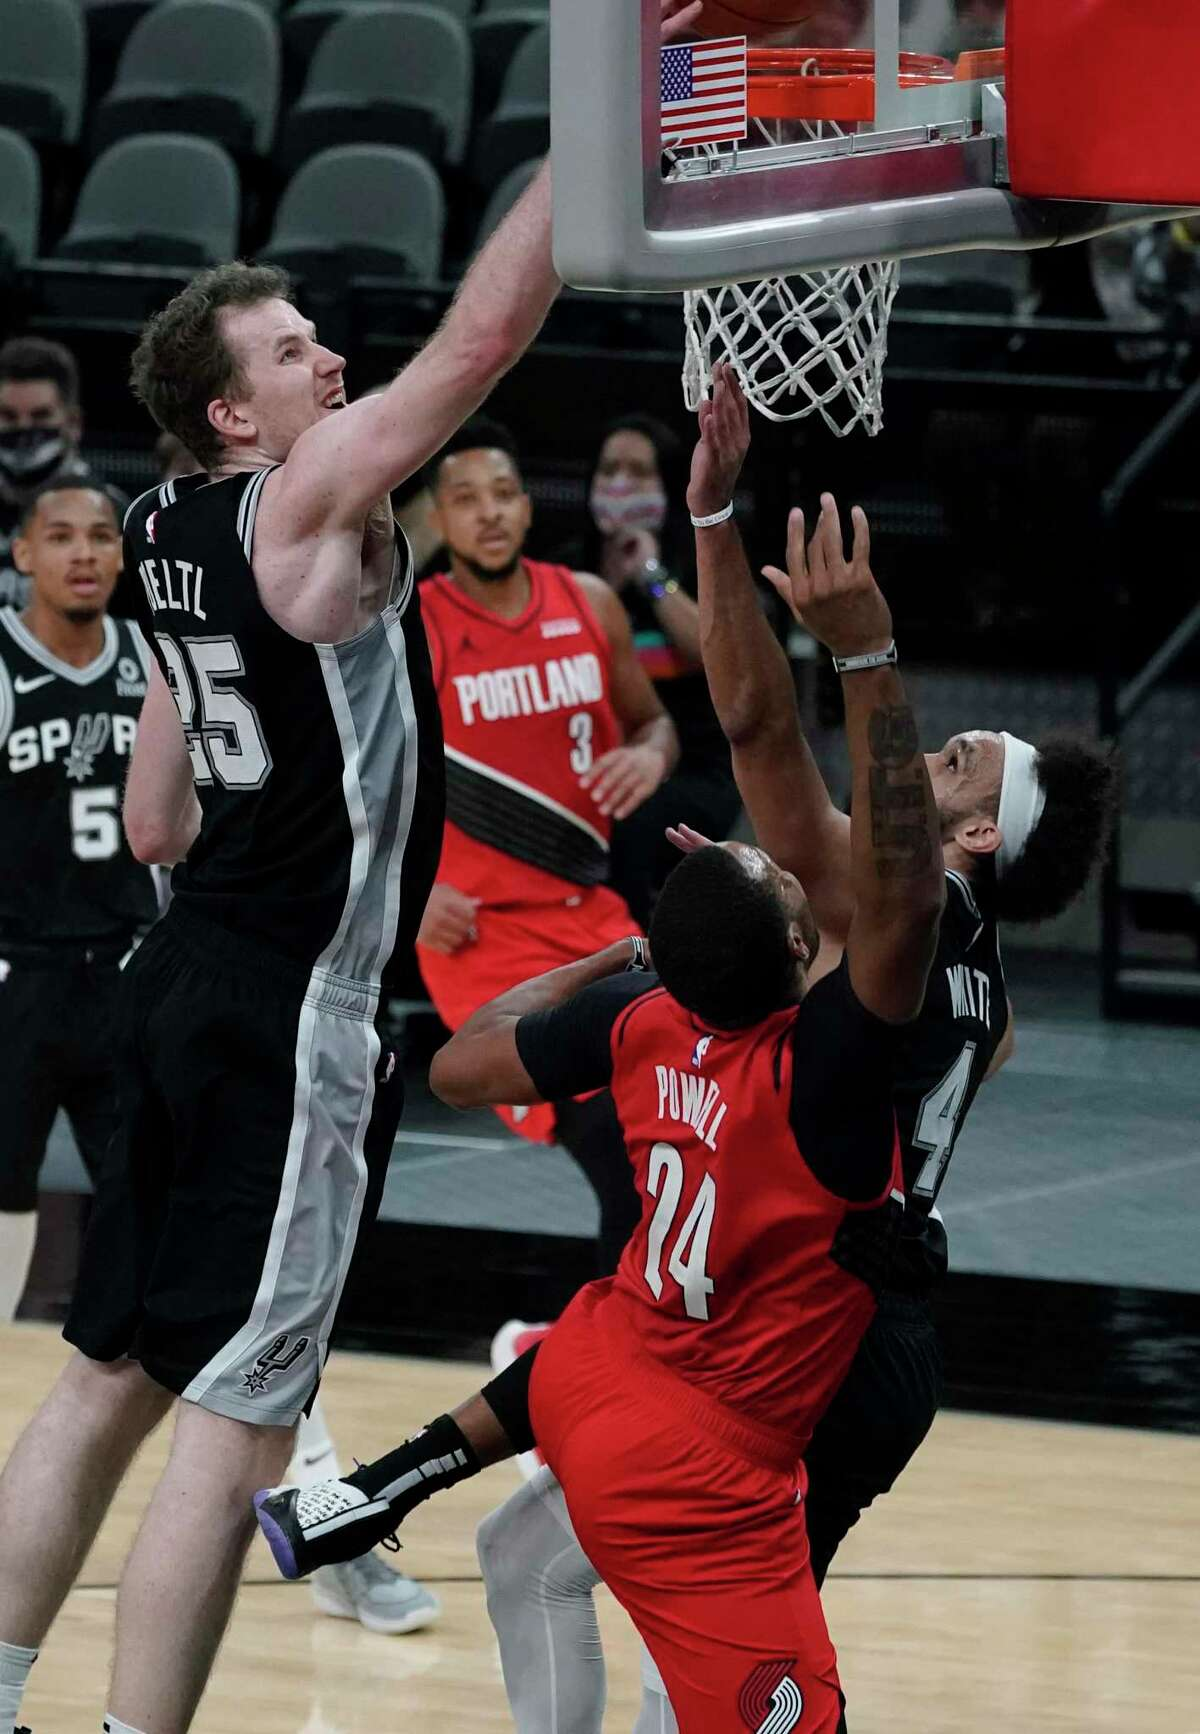 Portland Trail Blazers forward Norman Powell (24) scores the winning points past San Antonio Spurs center Jakob Poeltl (25) during the second half of an NBA basketball game in San Antonio, Friday, April 16, 2021. (AP Photo/Eric Gay)